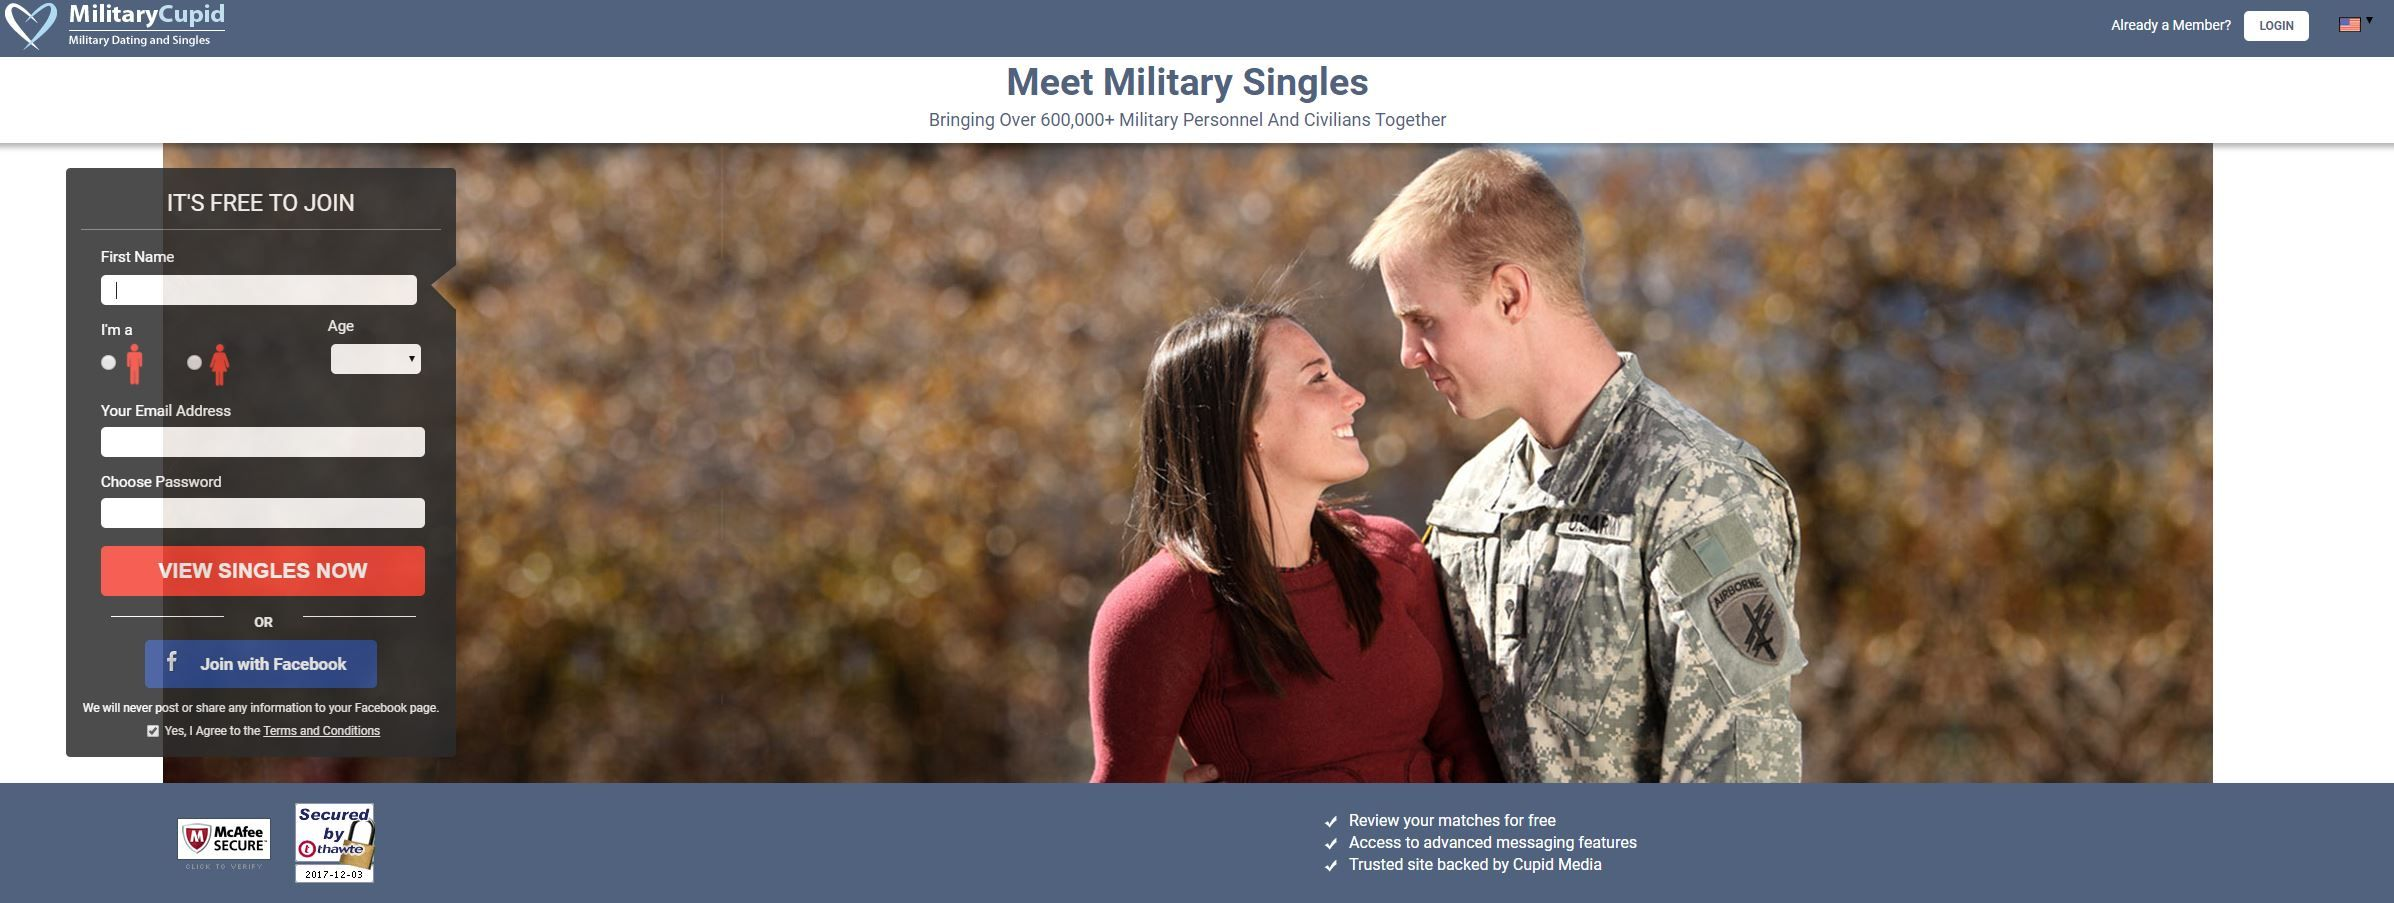 Best place to meet military singles